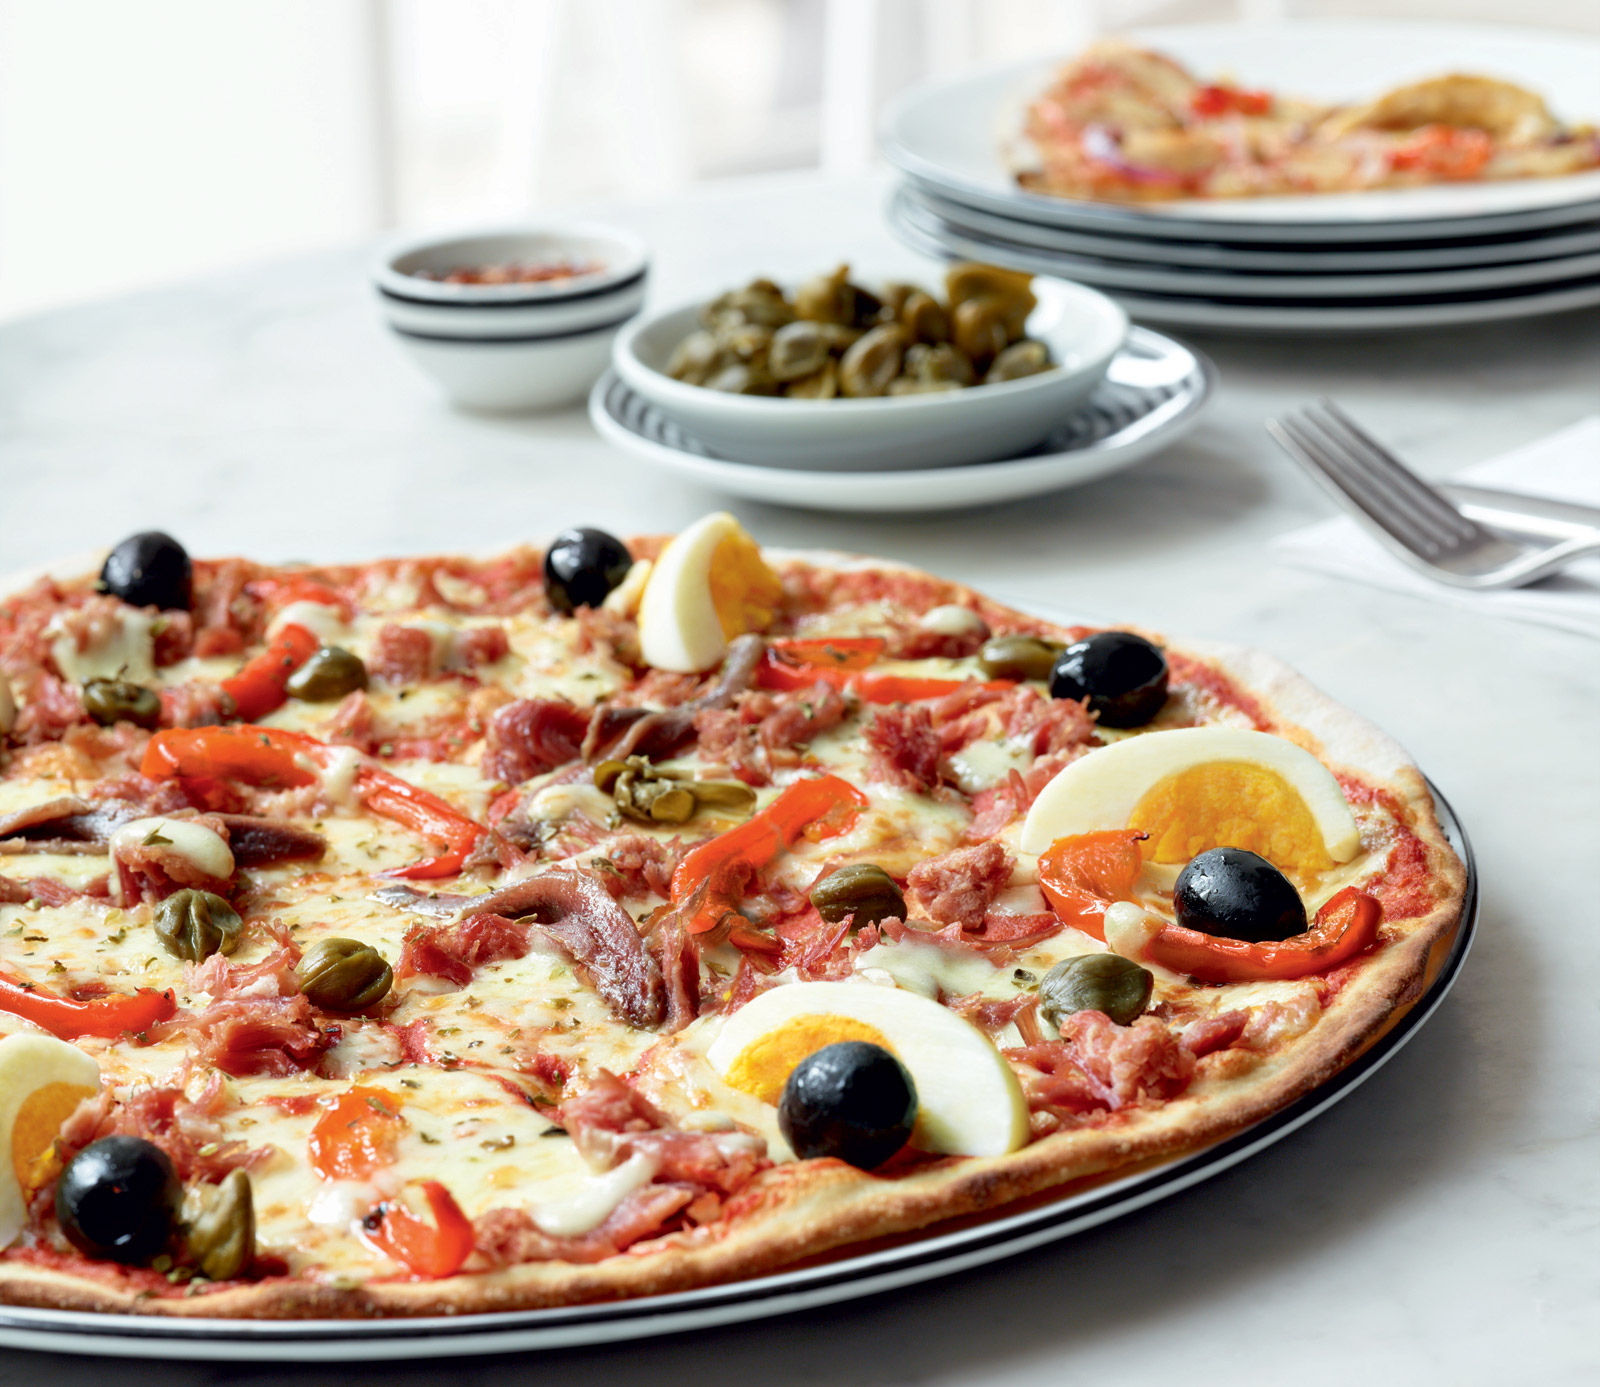 PizzaExpress St Bride St - London